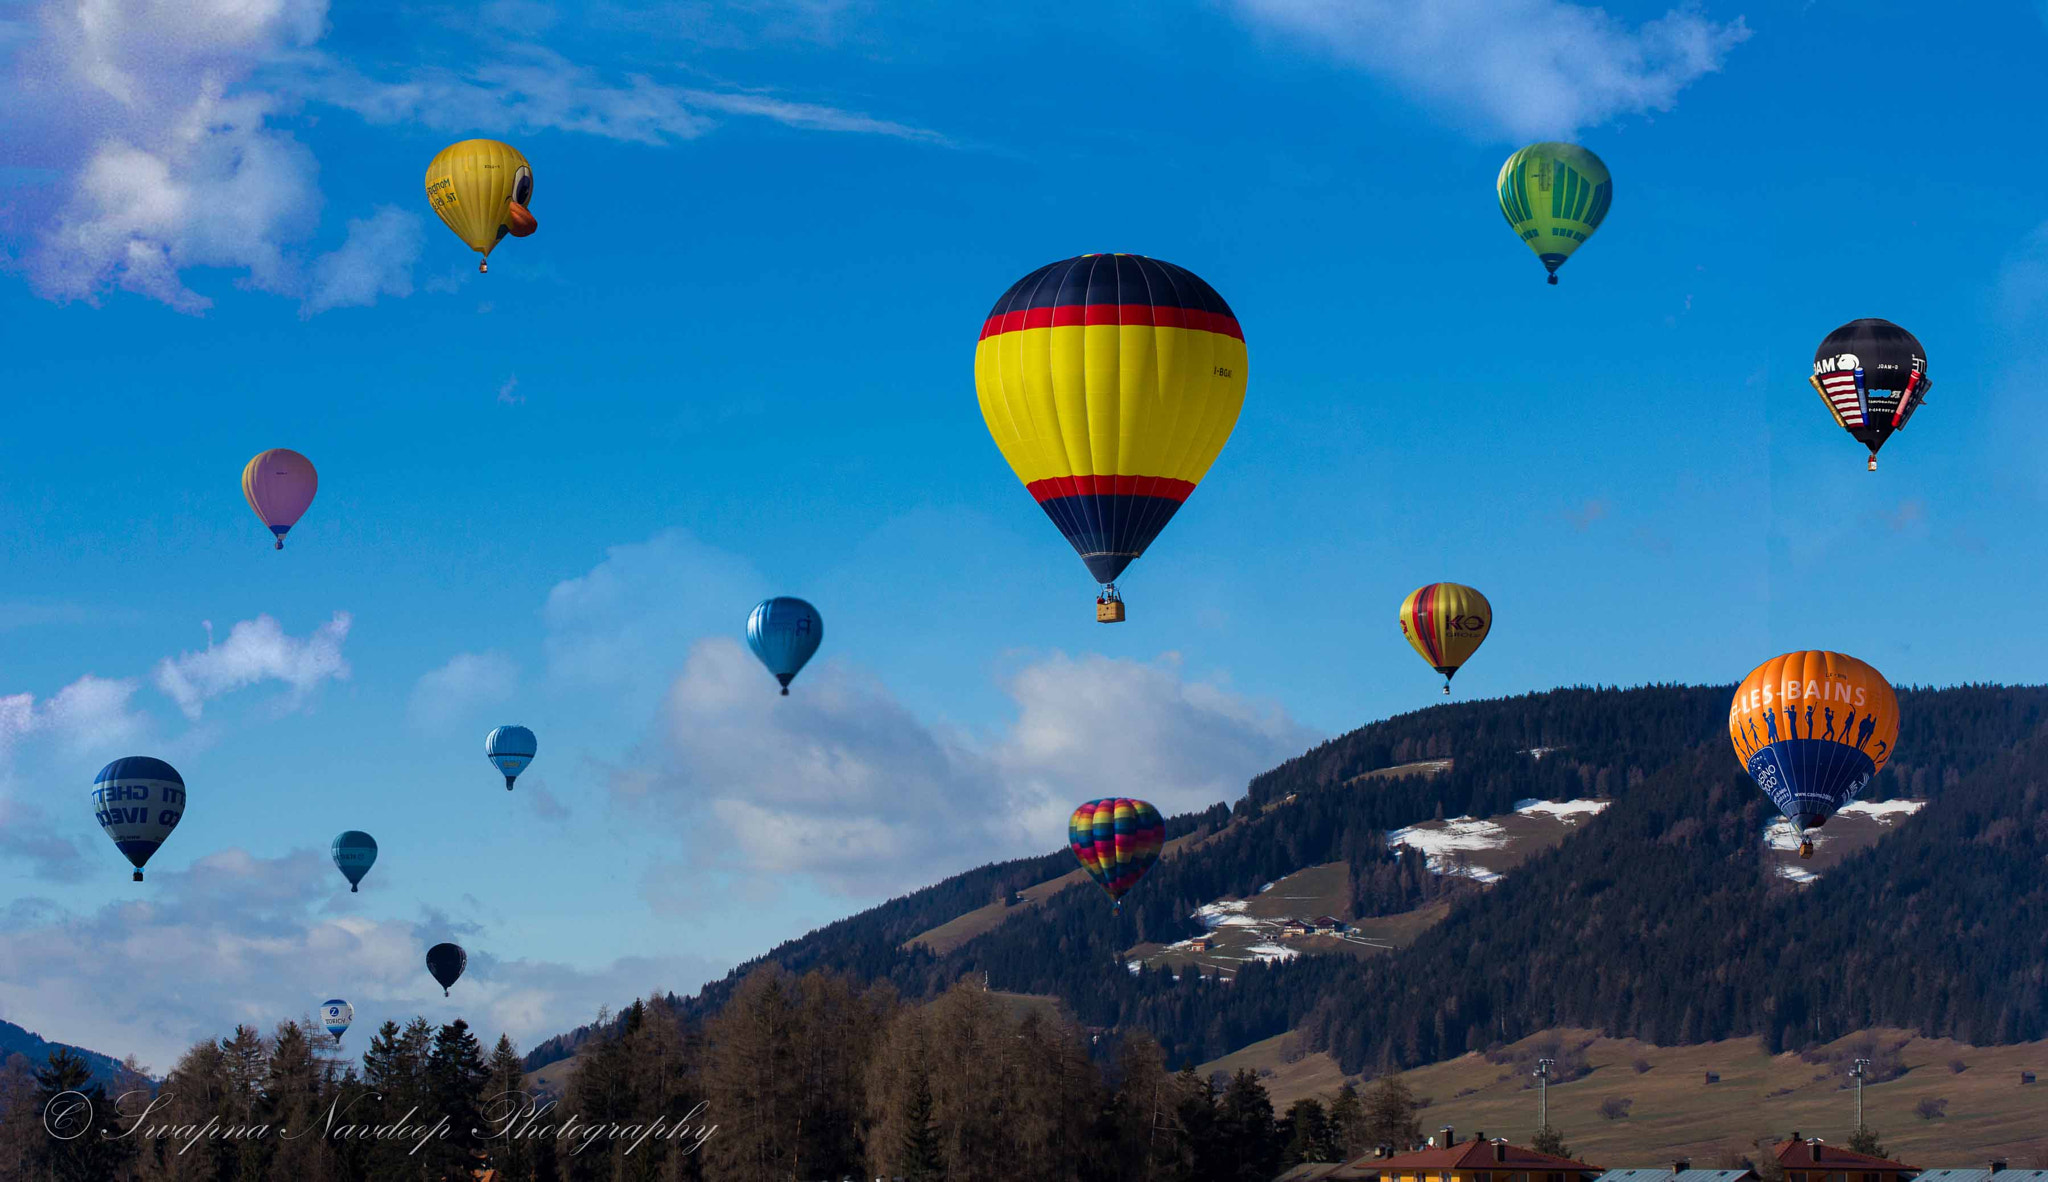 Photograph Balloon Festival by Swapna Navdeep on 500px